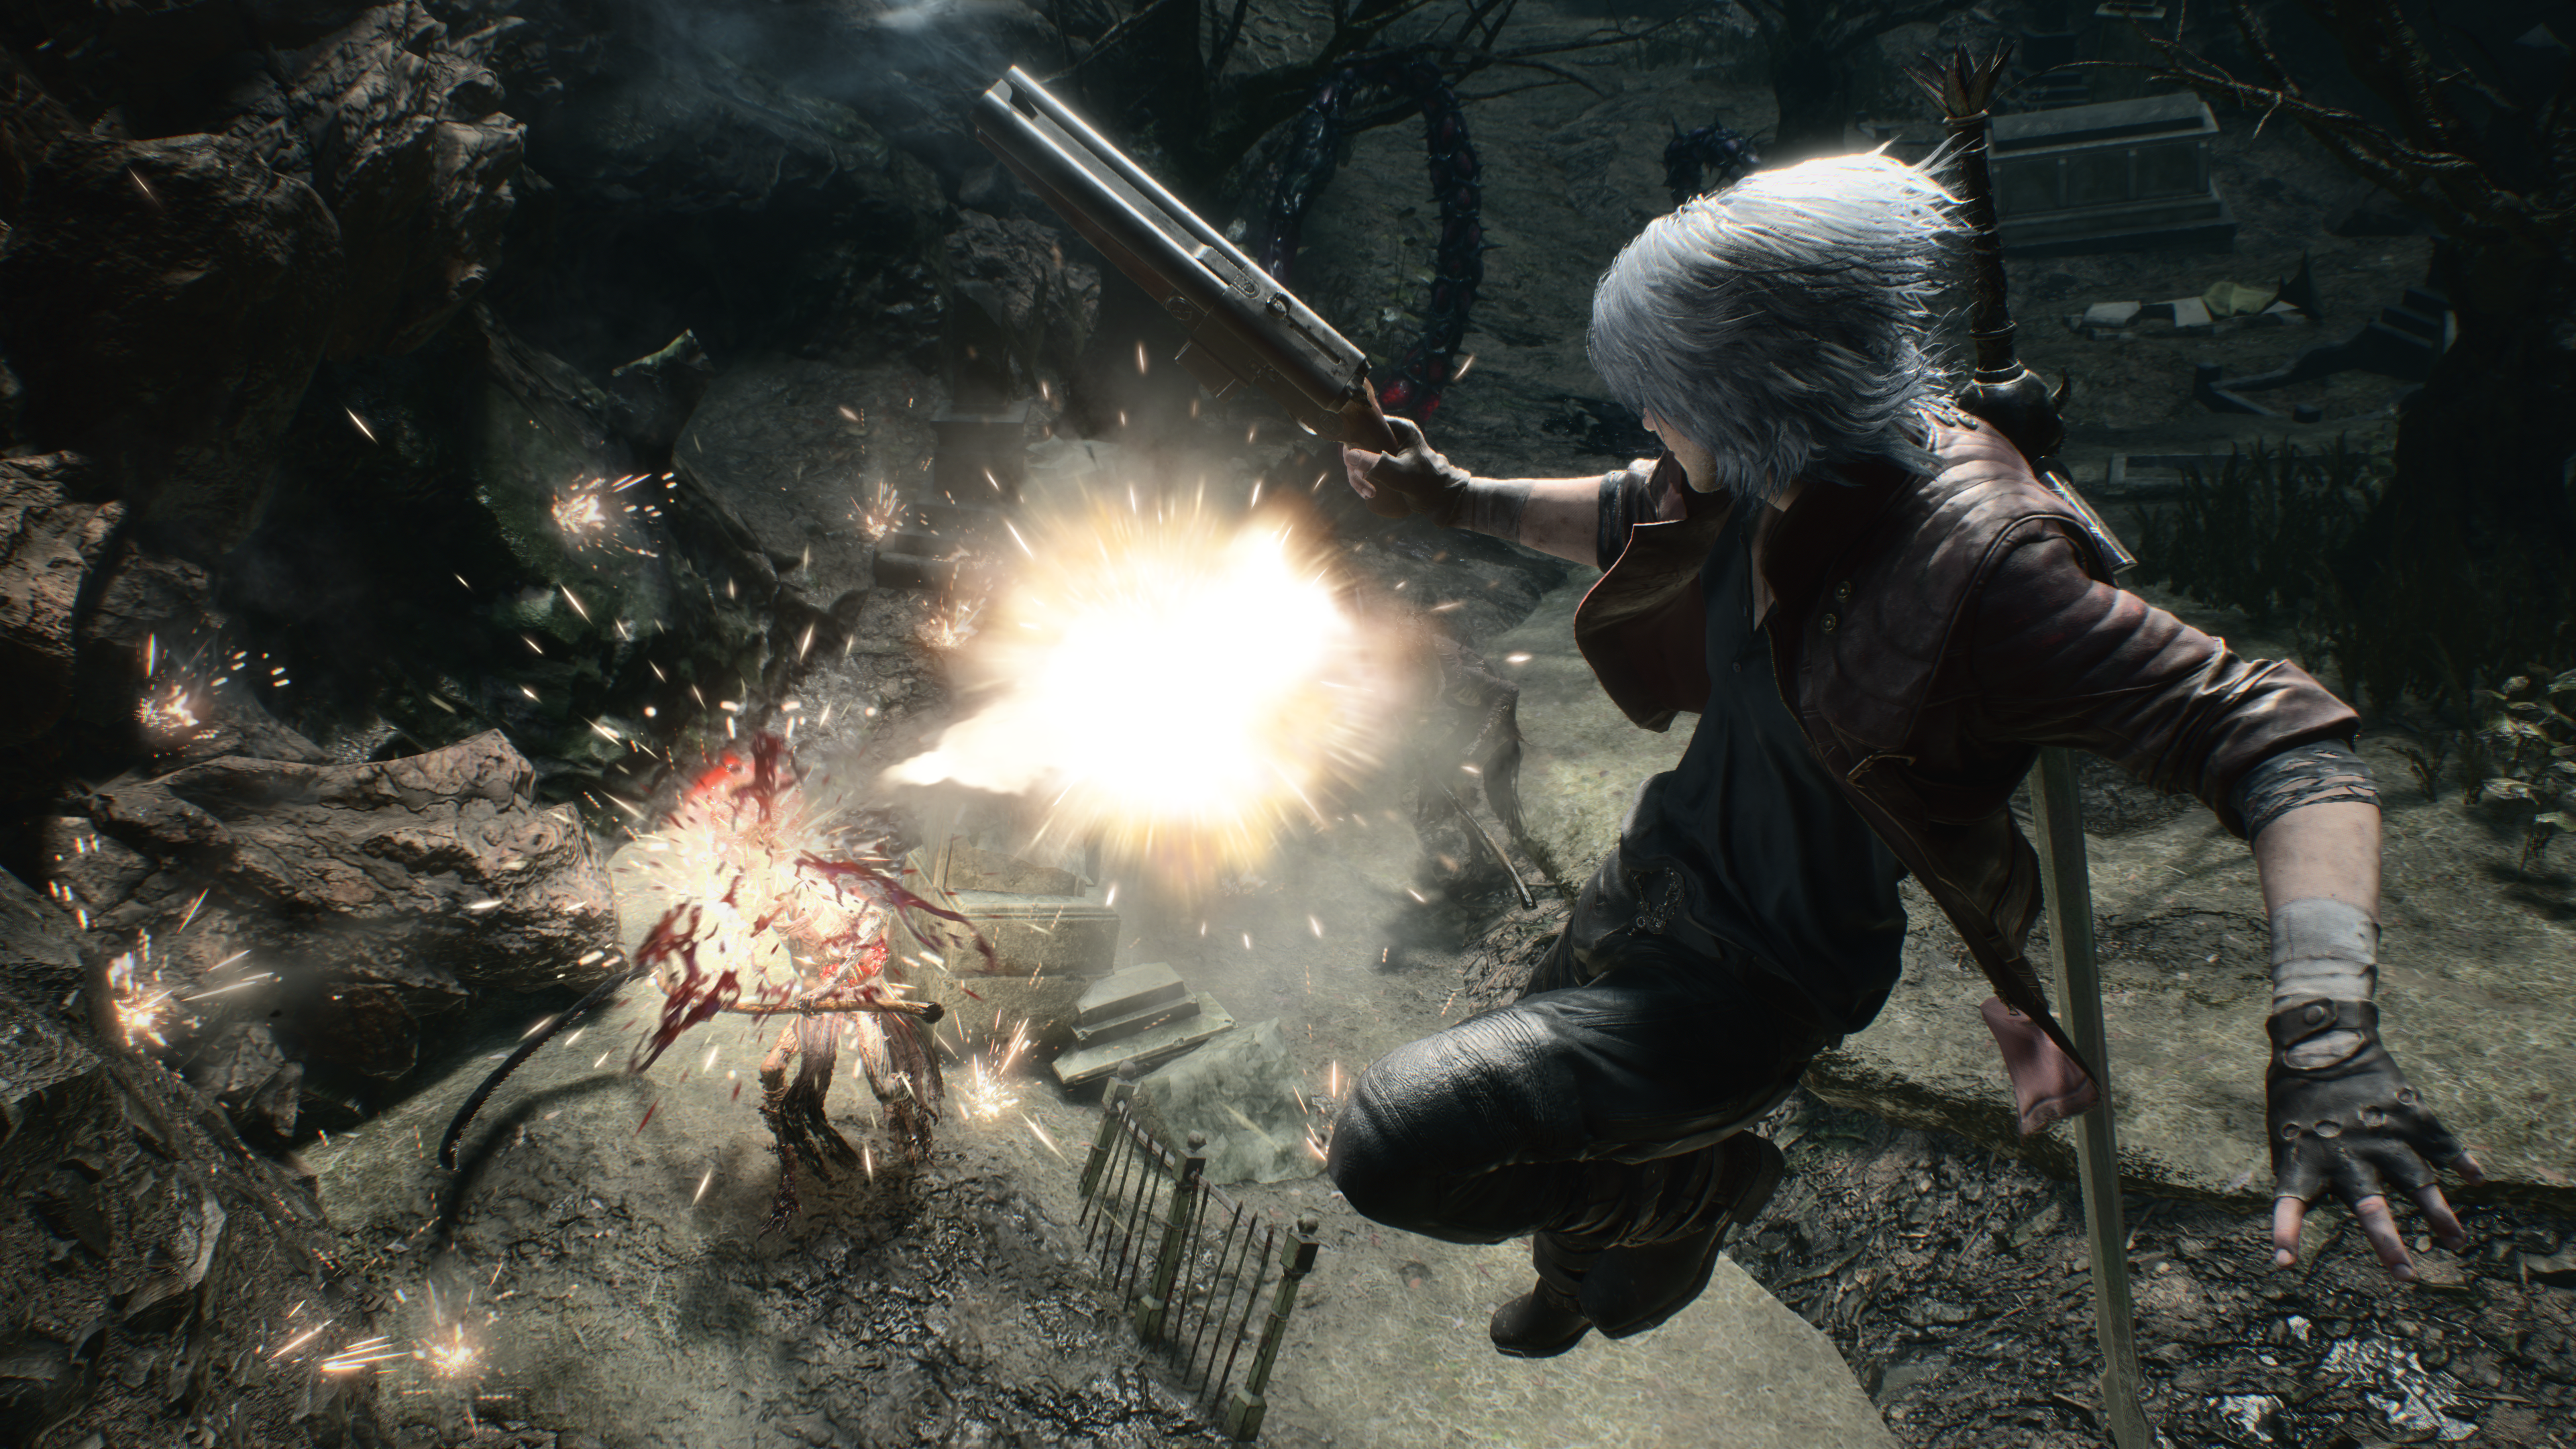 dmc5_screens_dante-01